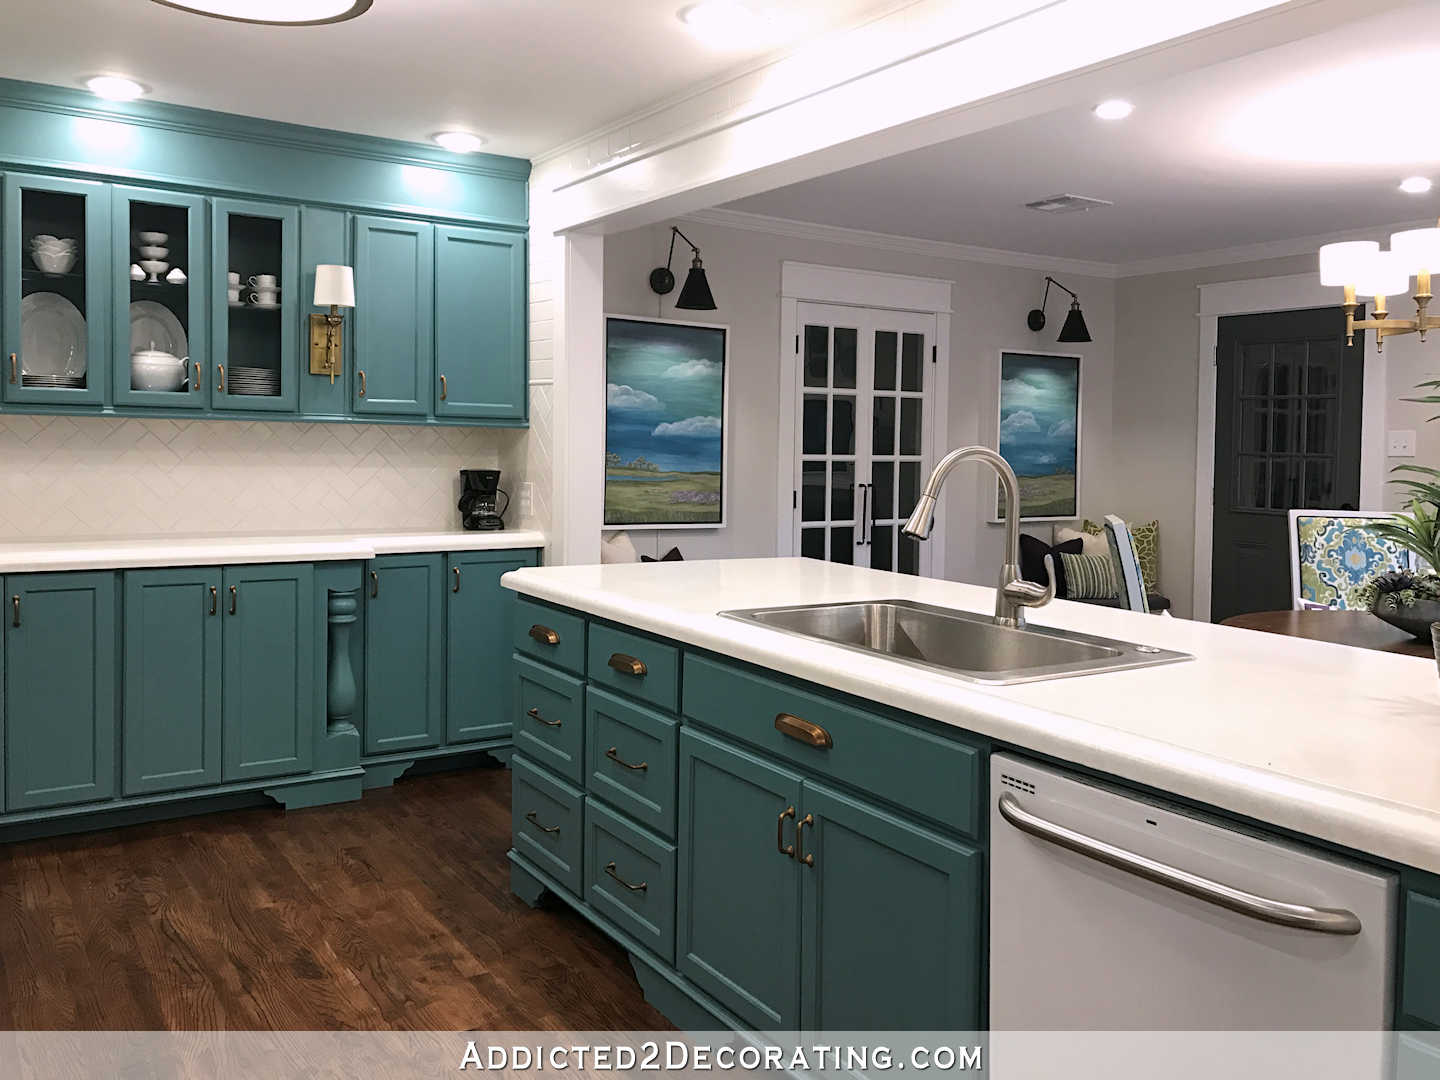 My Finished For Now Kitchen From Kelly Green To Teal Before Amp After Addicted 2 Decorating